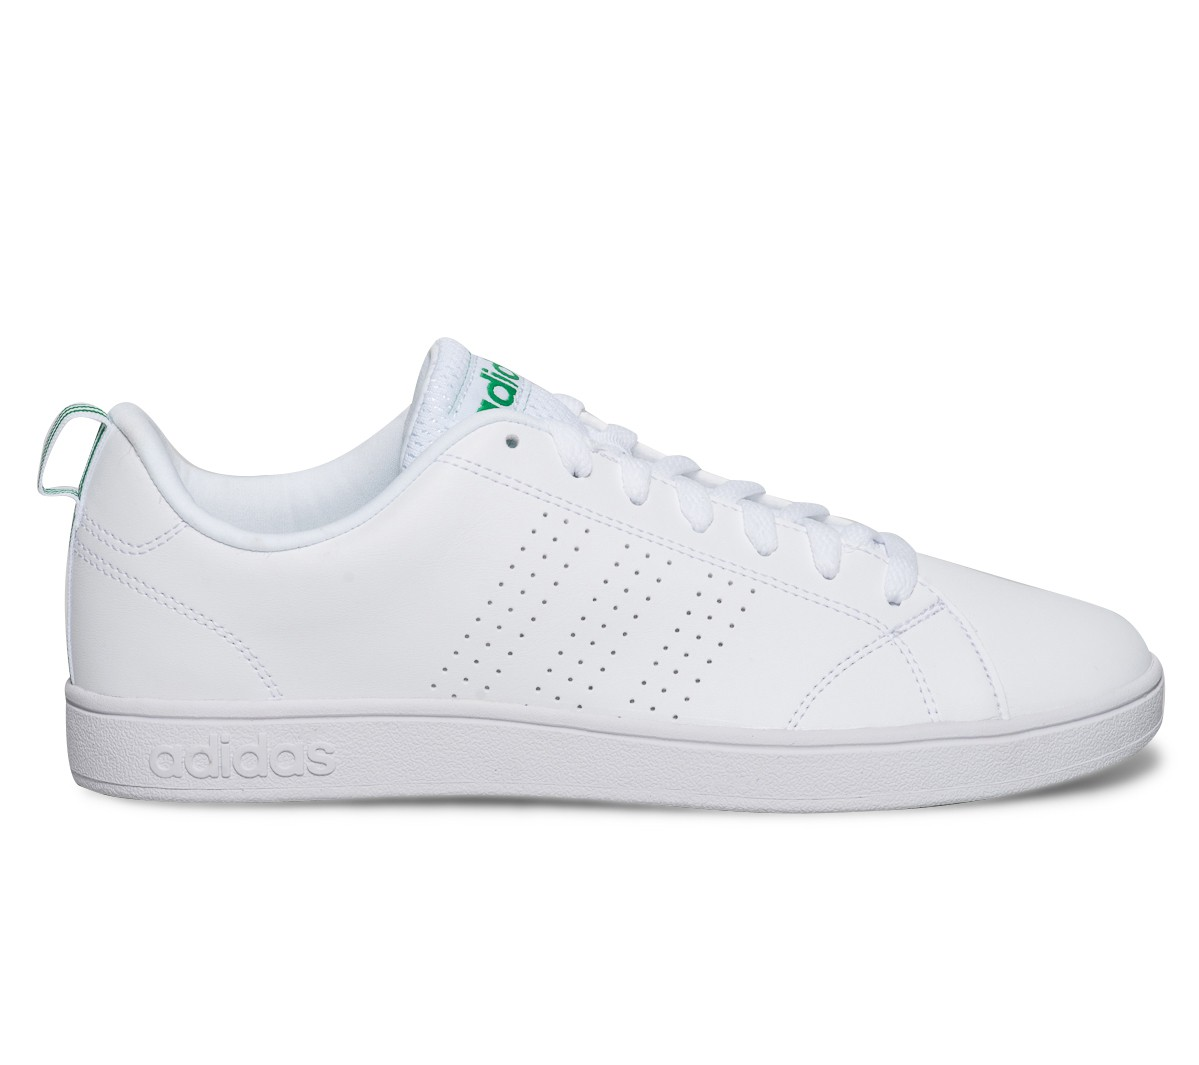 uk availability 7f721 84901 adidas blanche homme